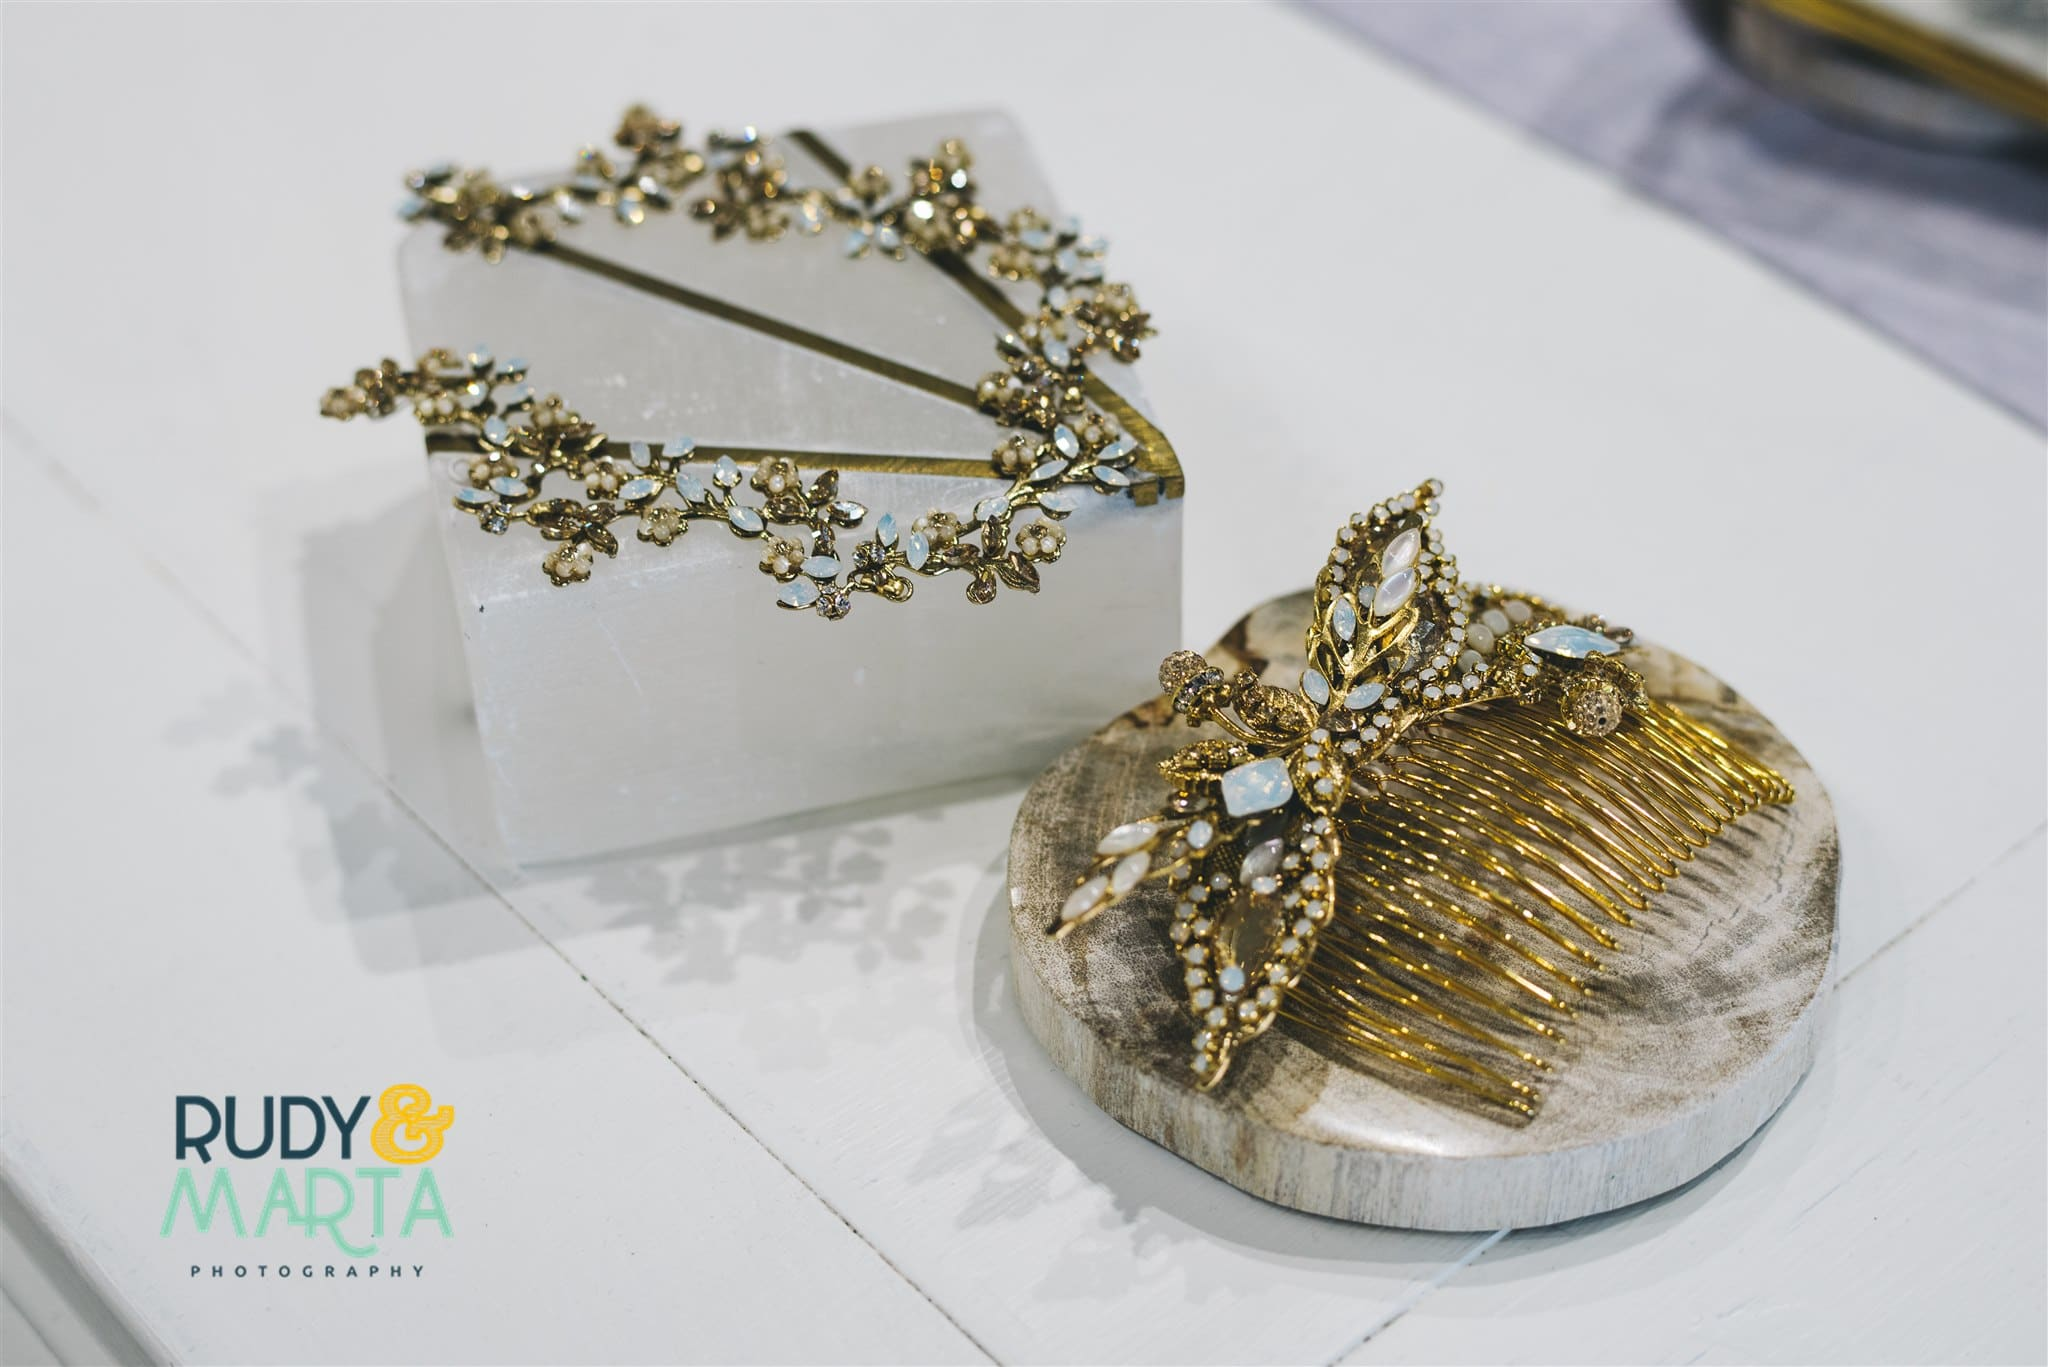 Questions for Wedding Dress Shoppingshould include accessory questions